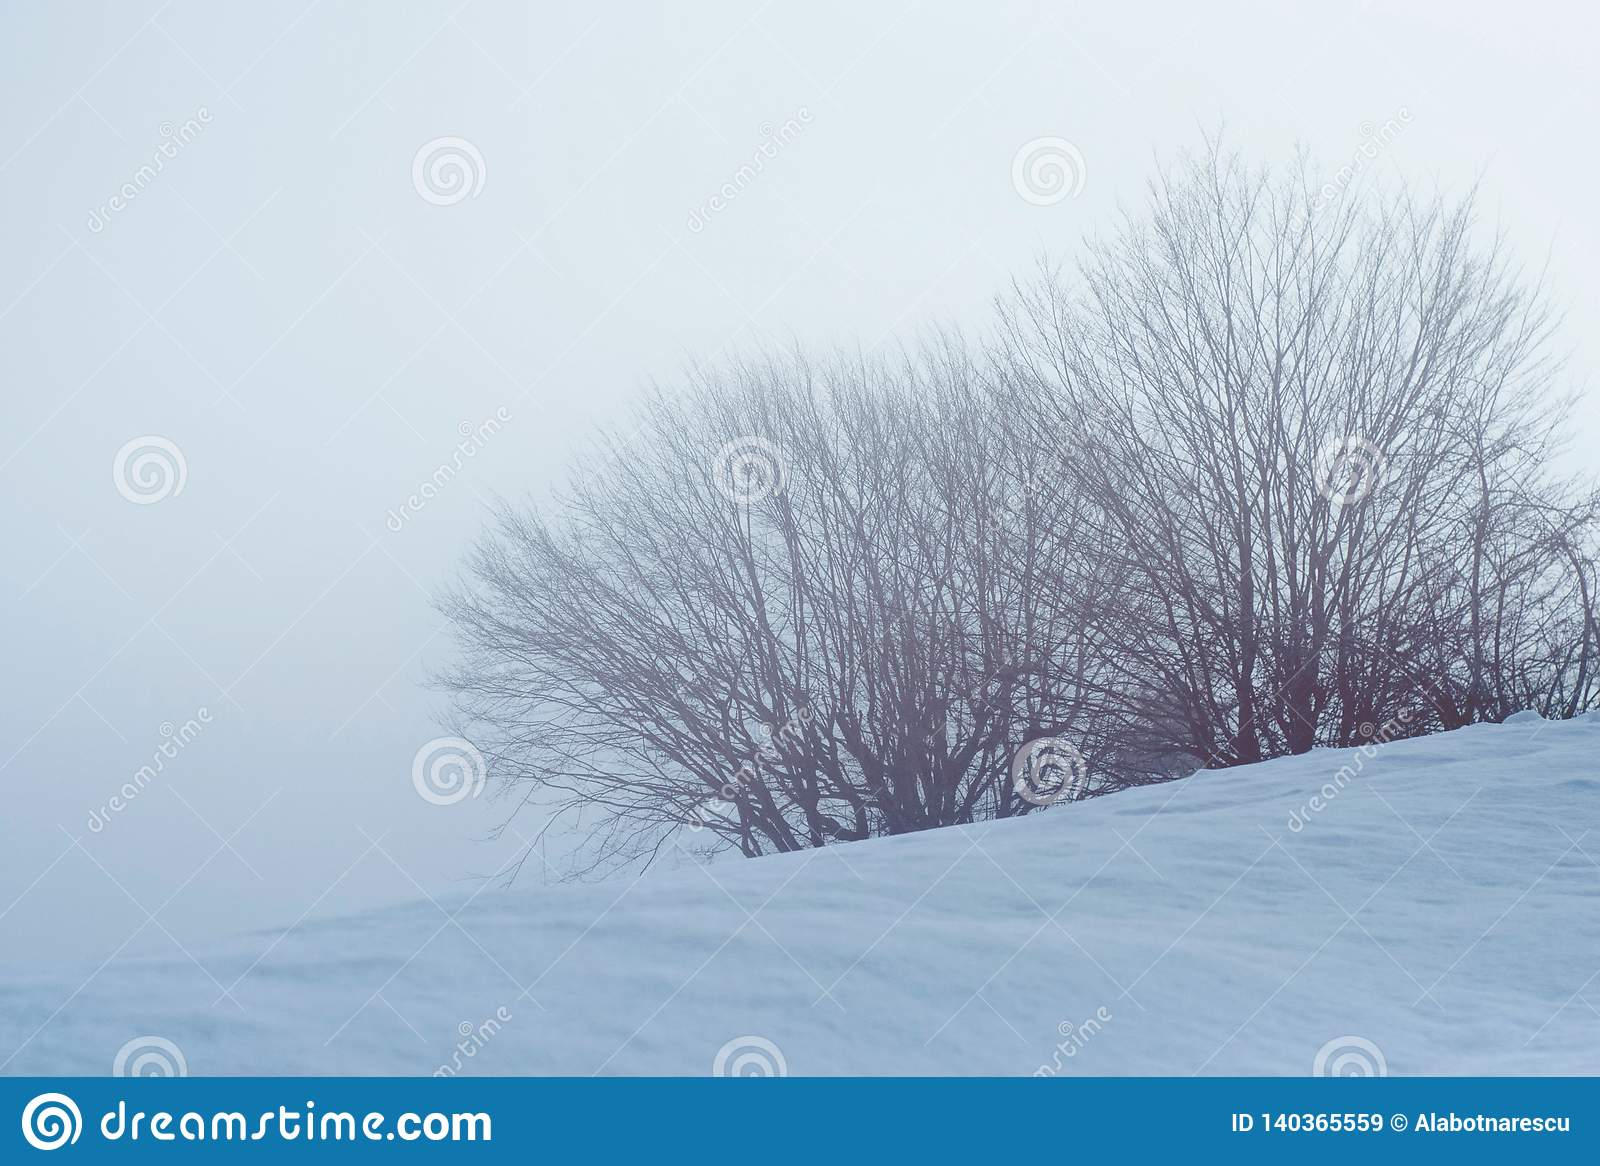 Bush and trees covered with snow in a foggy day